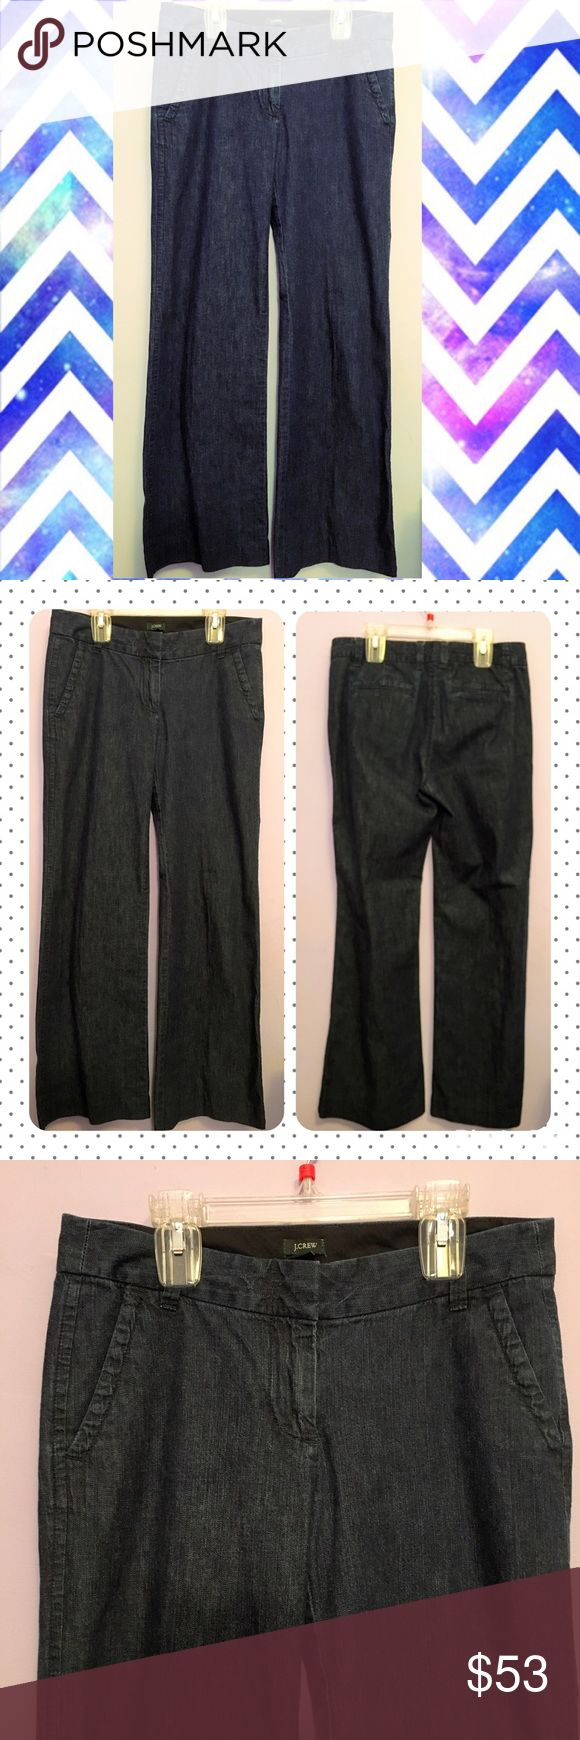 "J. Crew dark denim wide legged trouser jean J. Crew dark denim wide legged trouser.  Inseam is 29.5"".  All prices are negotiable so 💕Make offers💕 🚫No trades🚫 J. Crew Jeans Flare & Wide Leg"